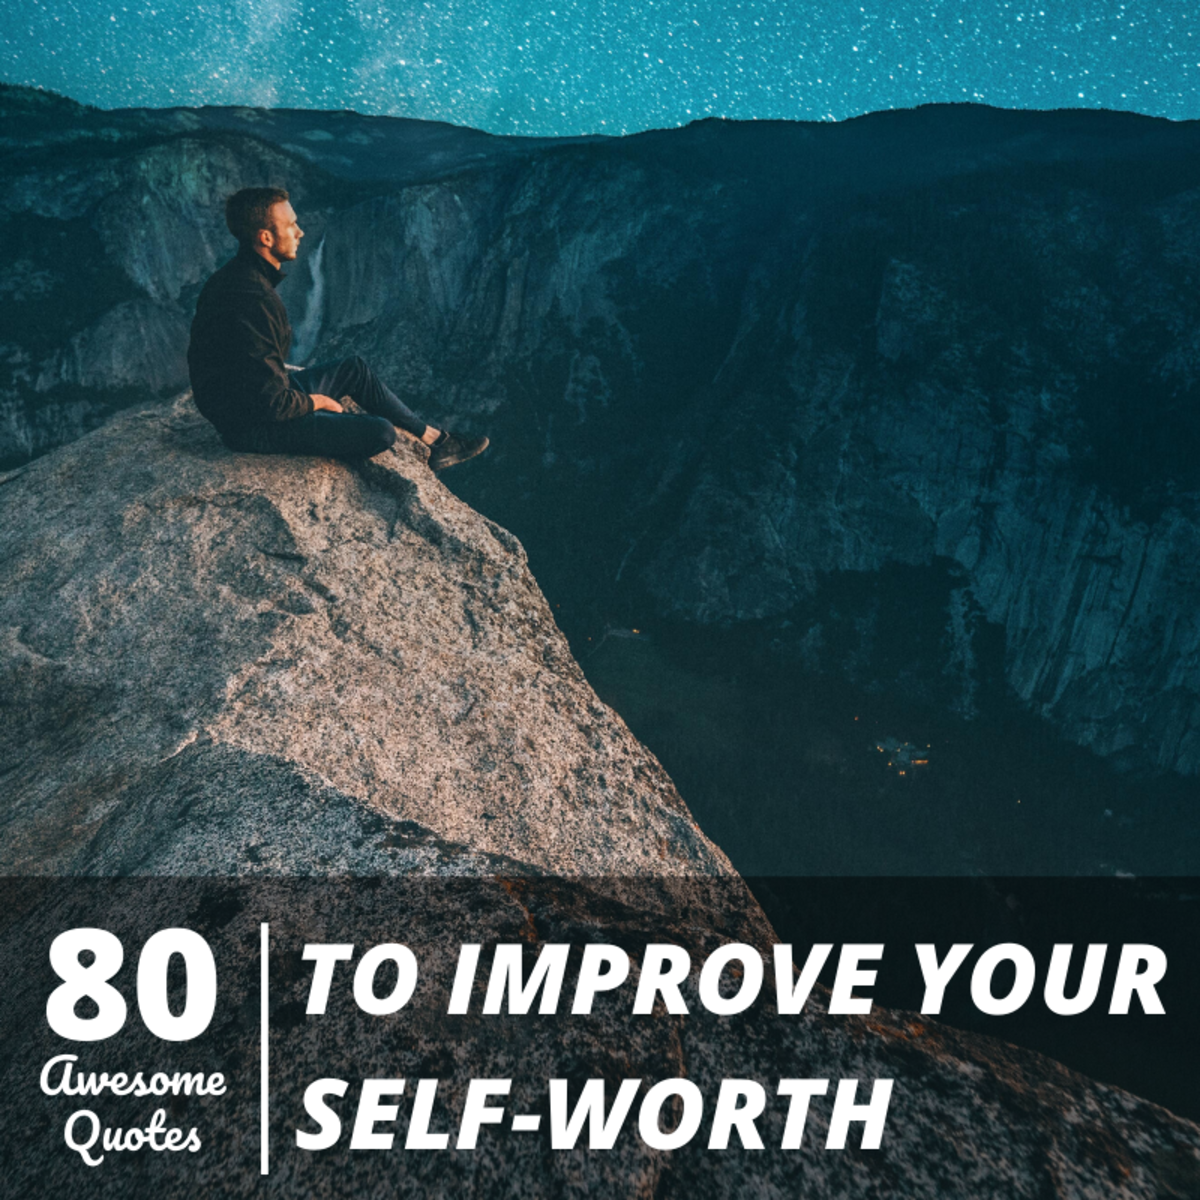 80 Thought-Provoking Quotes to Boost Your Self-Worth